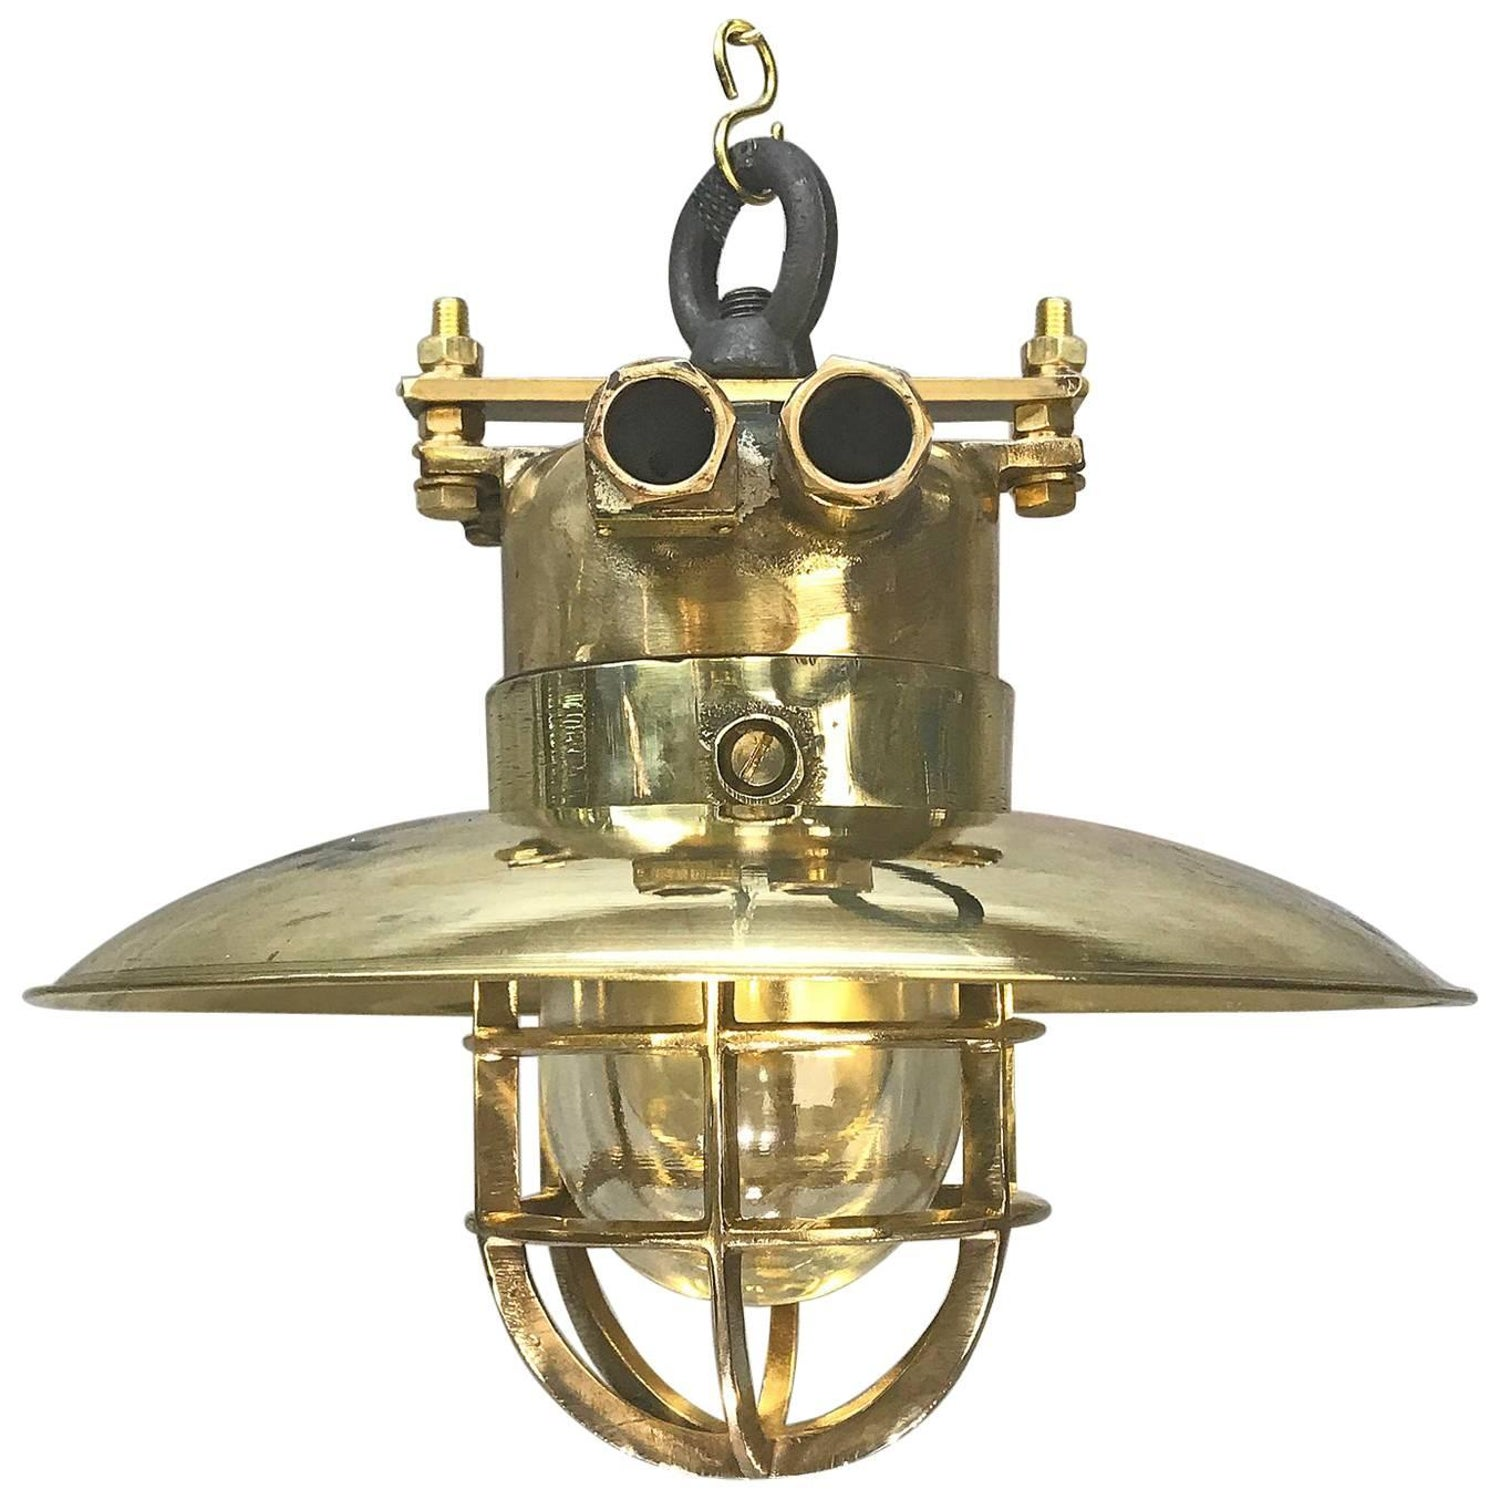 Late century german cast brass and glass explosion proof pendant light brass shade for sale at 1stdibs